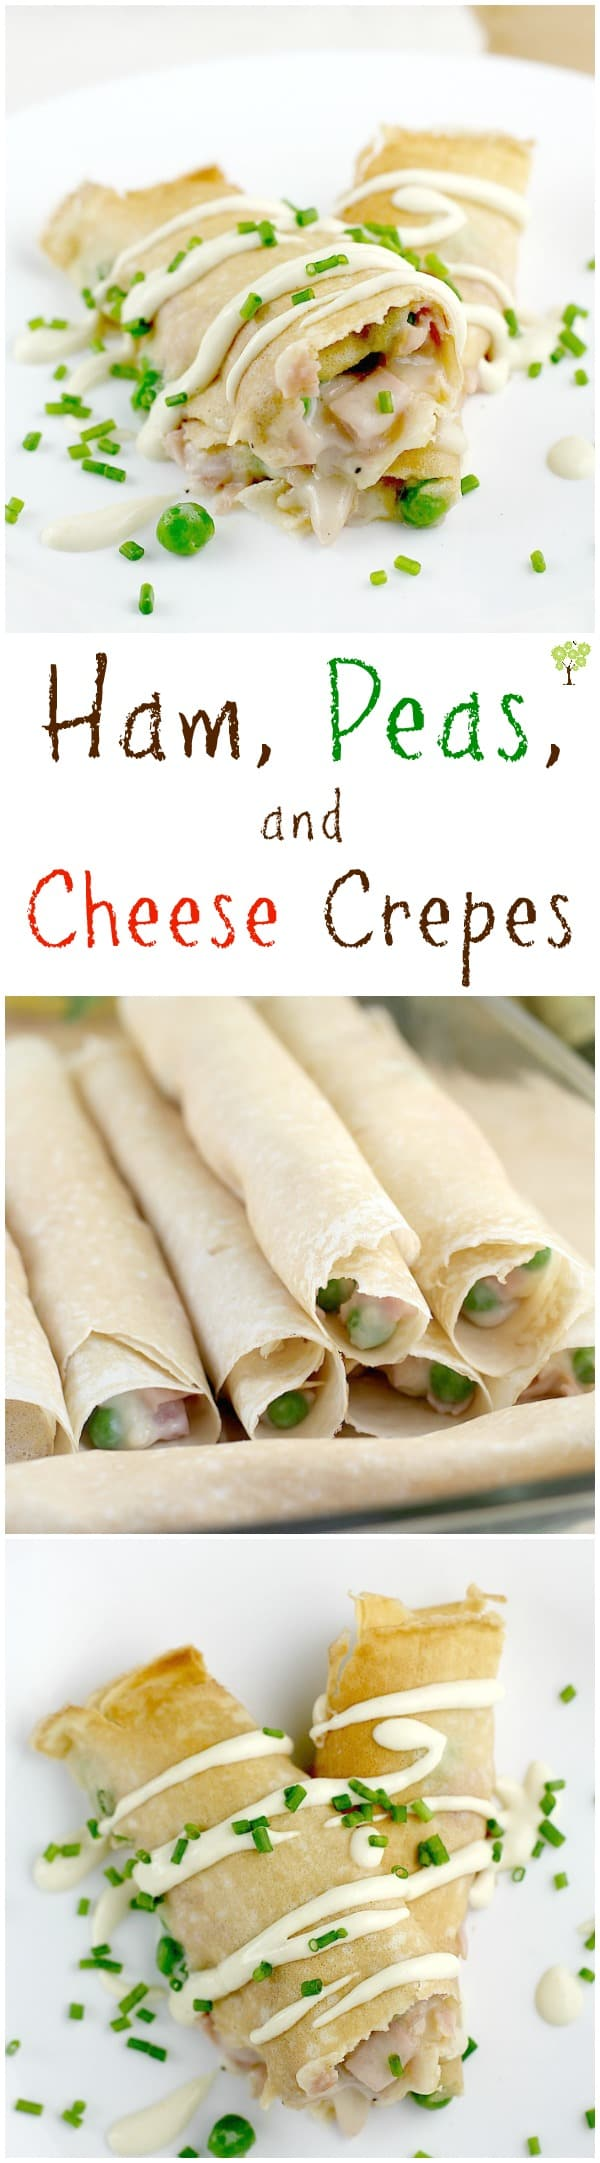 Ham, Peas, and Cheese Crepes http://wp.me/p4qC4h-3Id #food #recipe #BeyondTheSandwich #ad